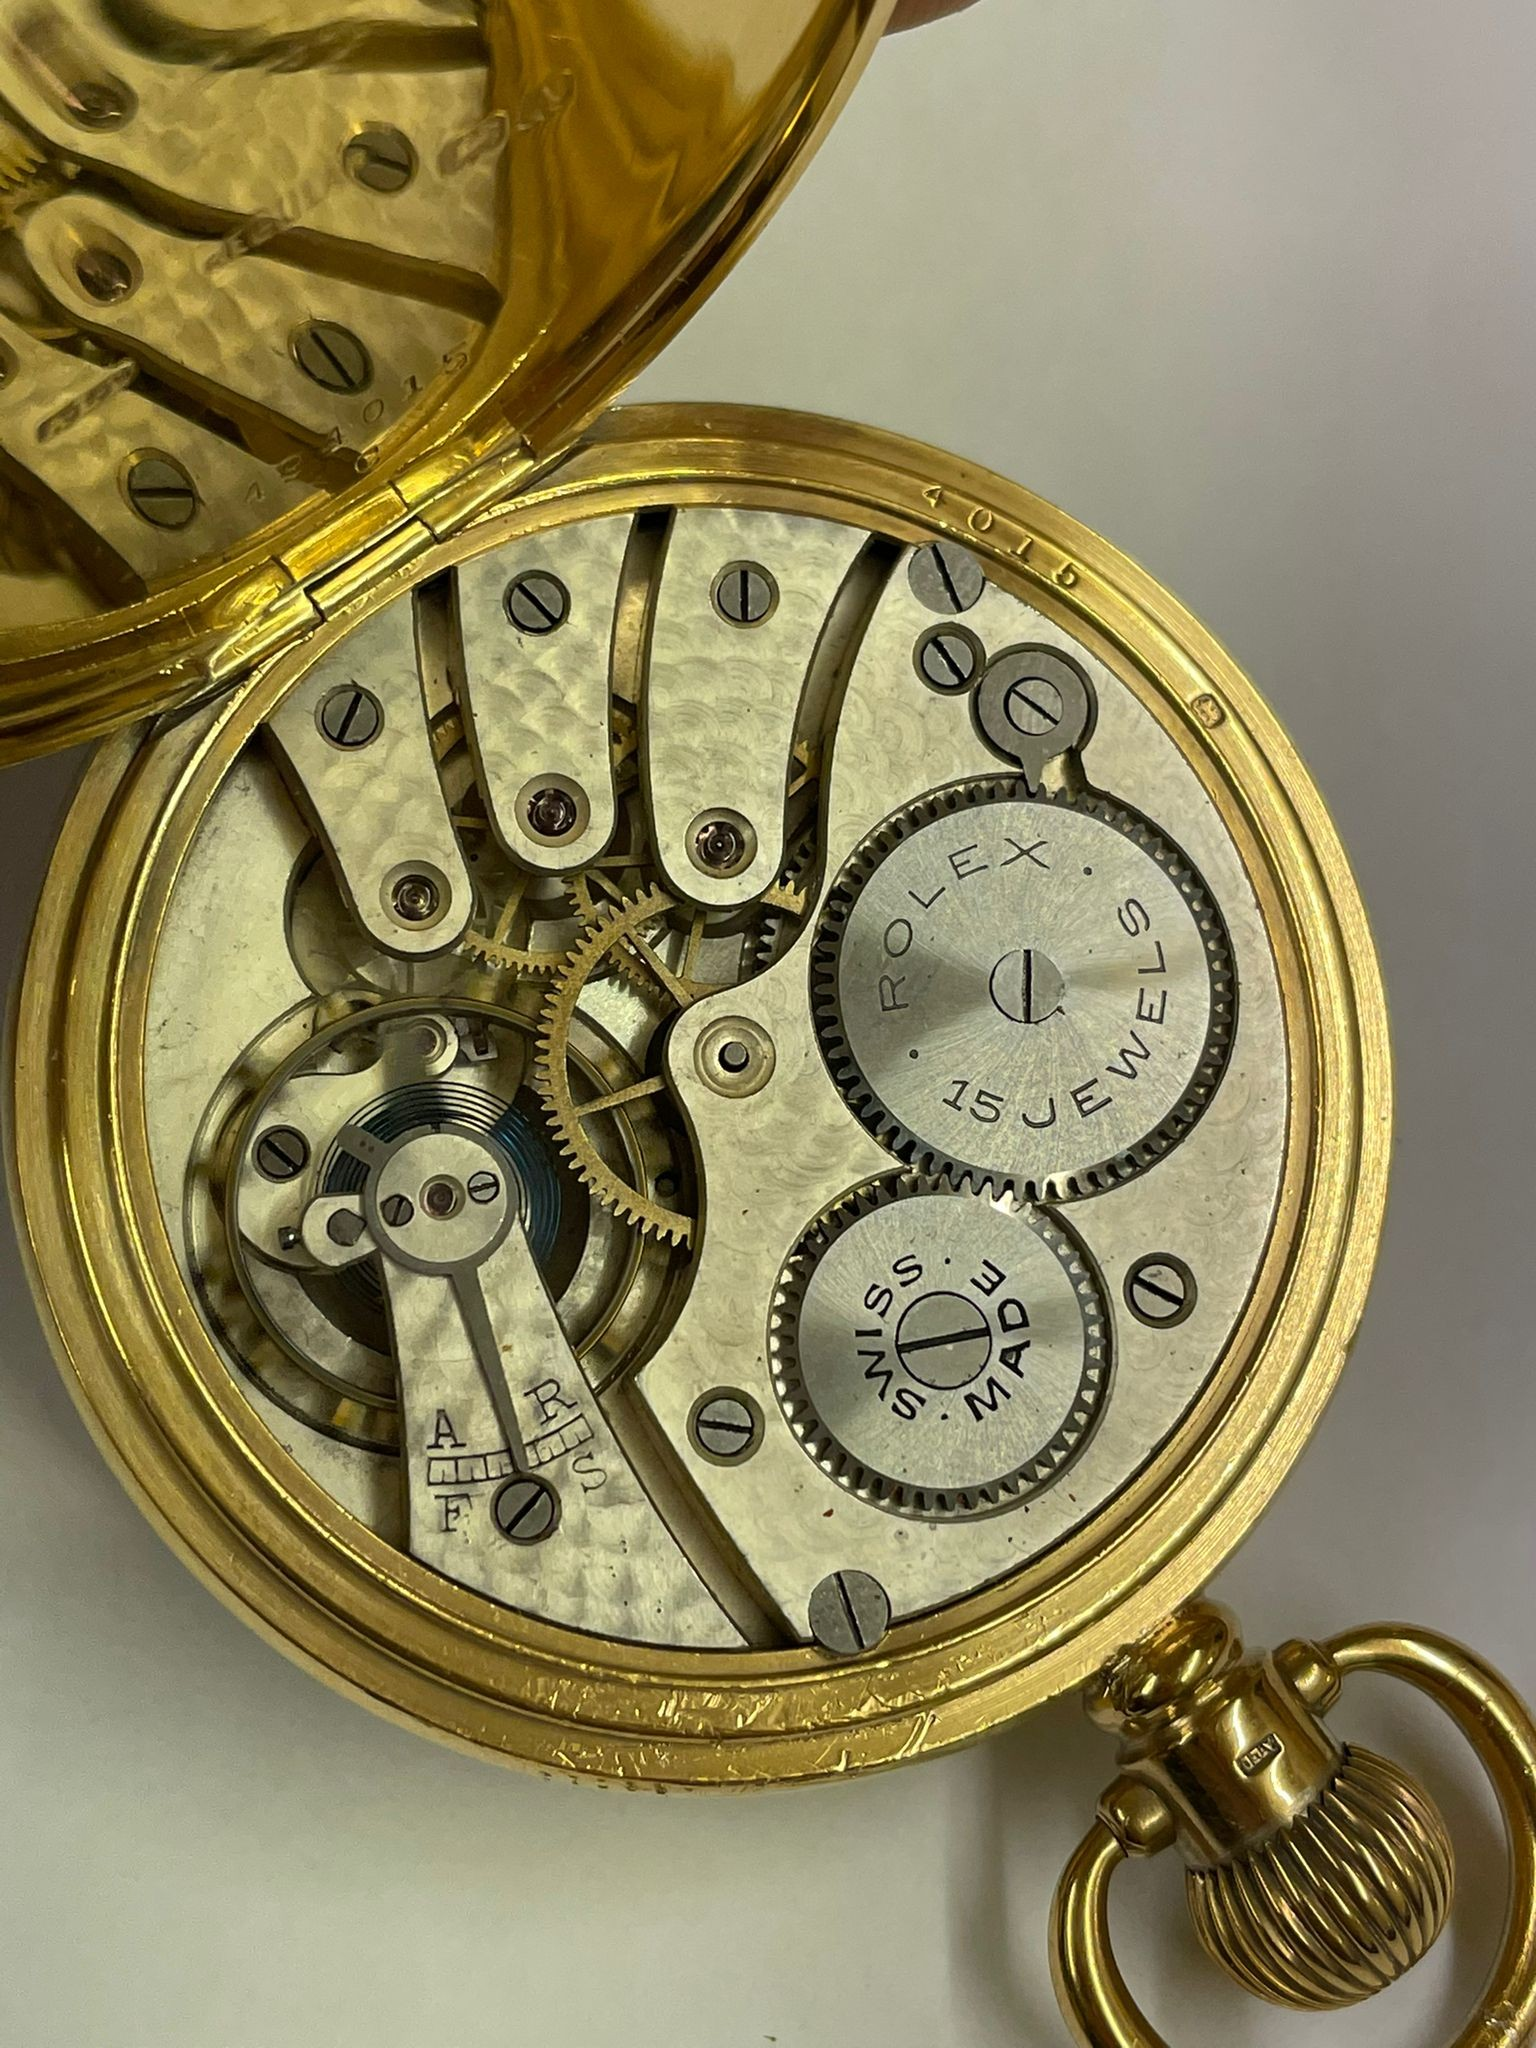 Vintage Masonic Rolex pocket watch with stand good condition and good working order but no - Image 12 of 21